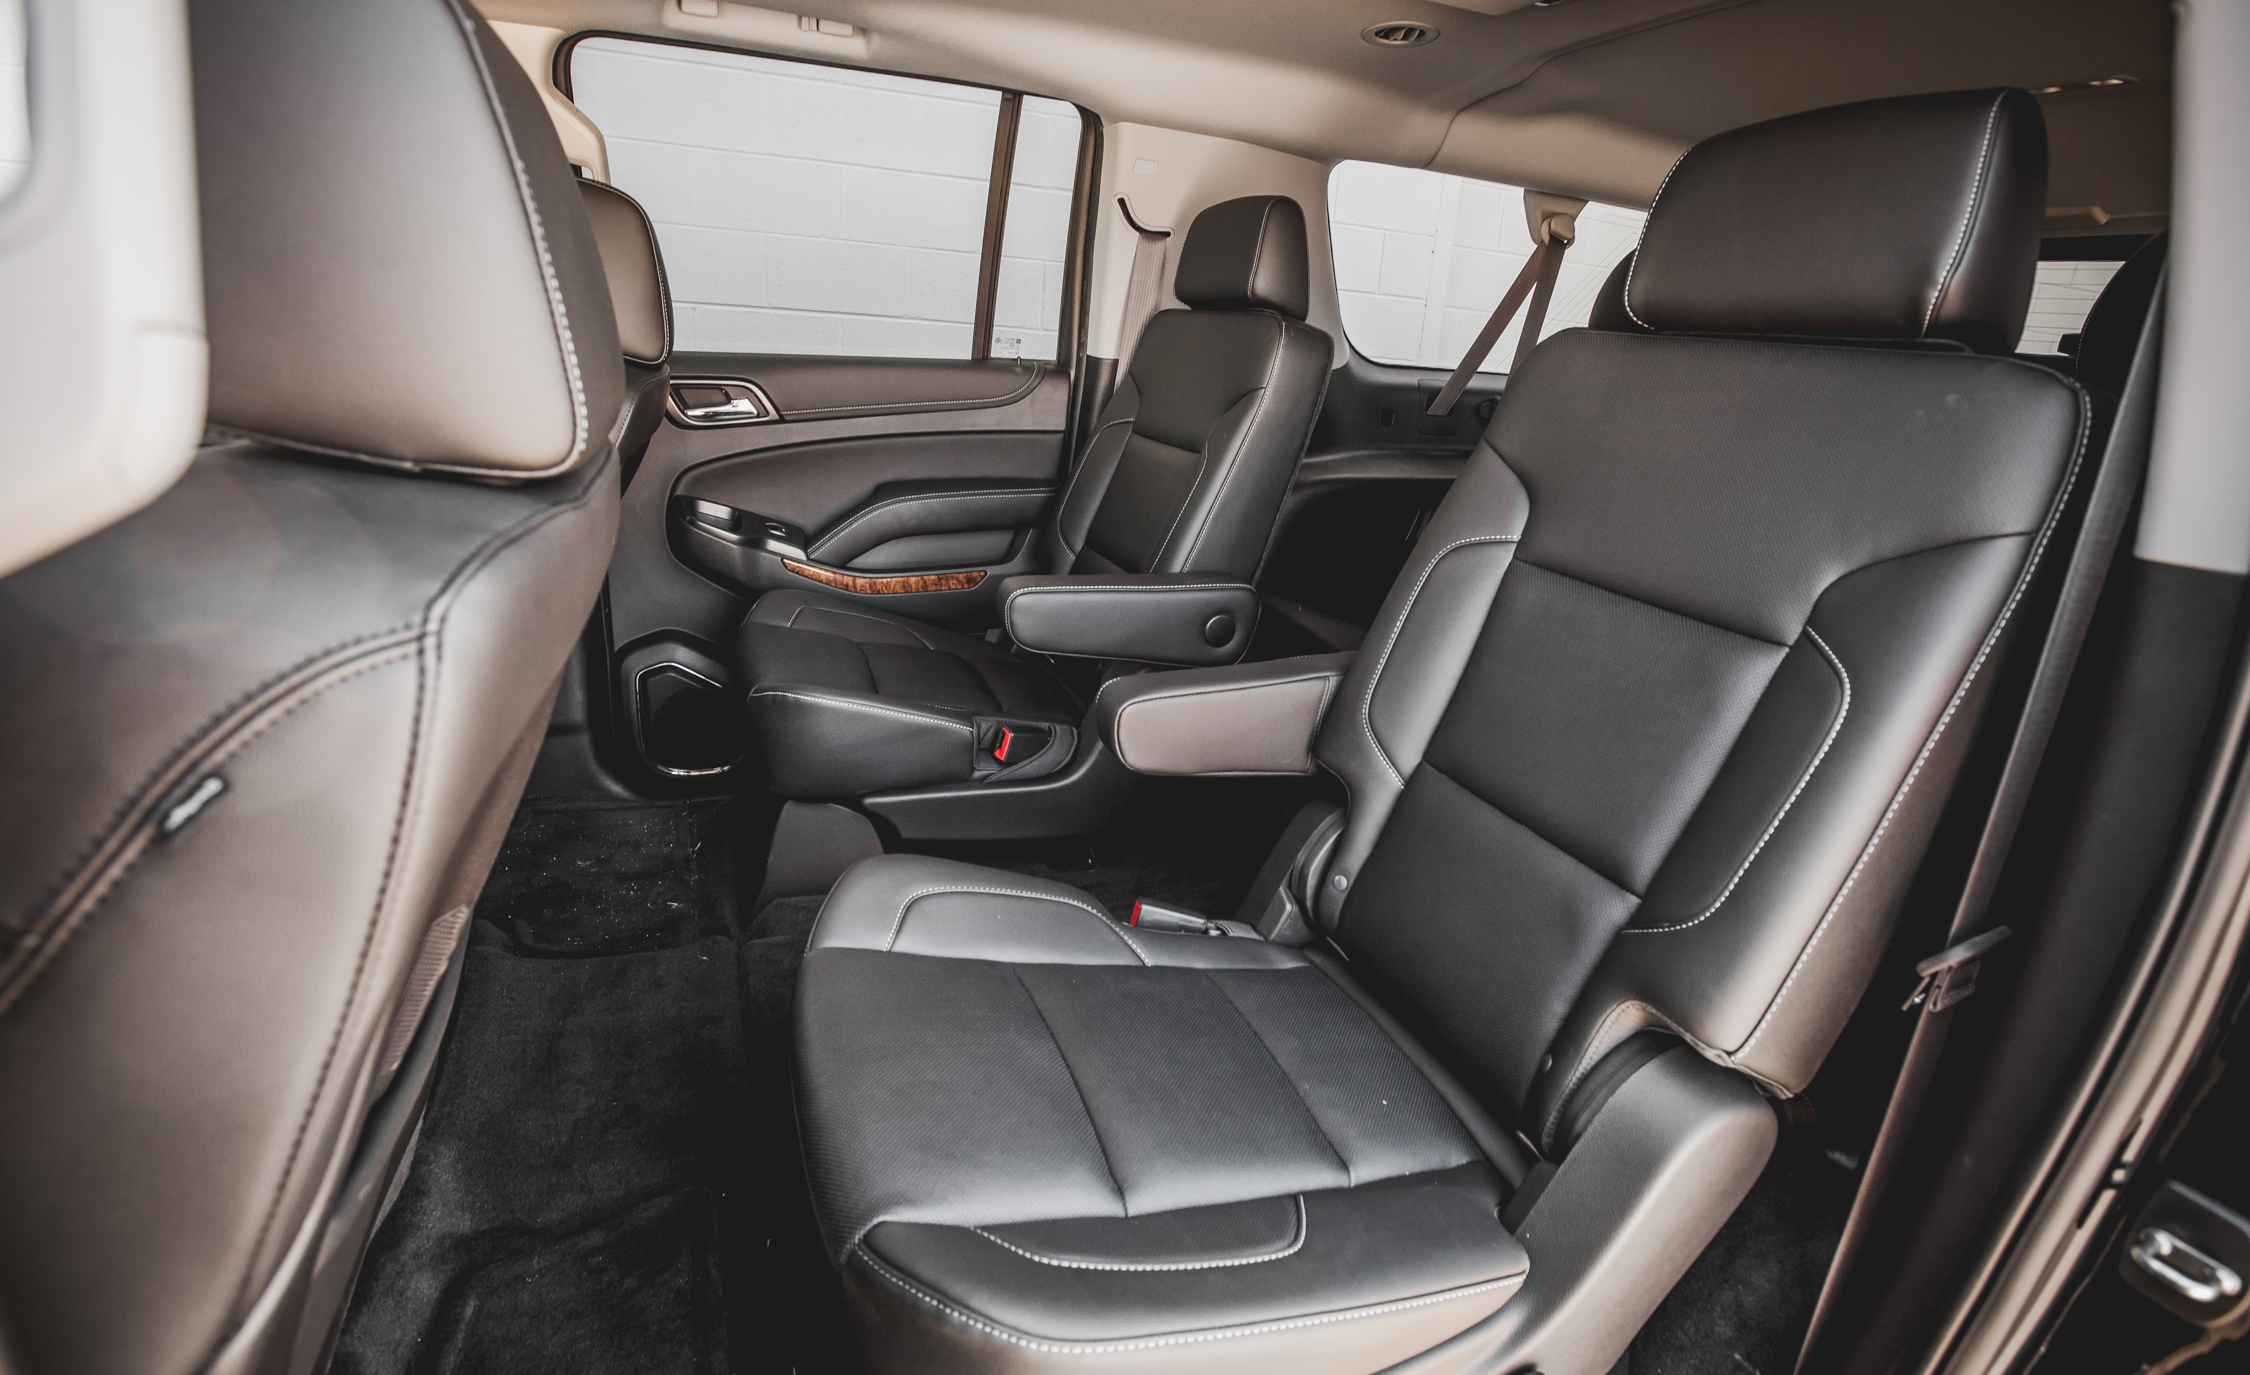 2015 Chevrolet Suburban LTZ Interior (Photo 17 of 33)